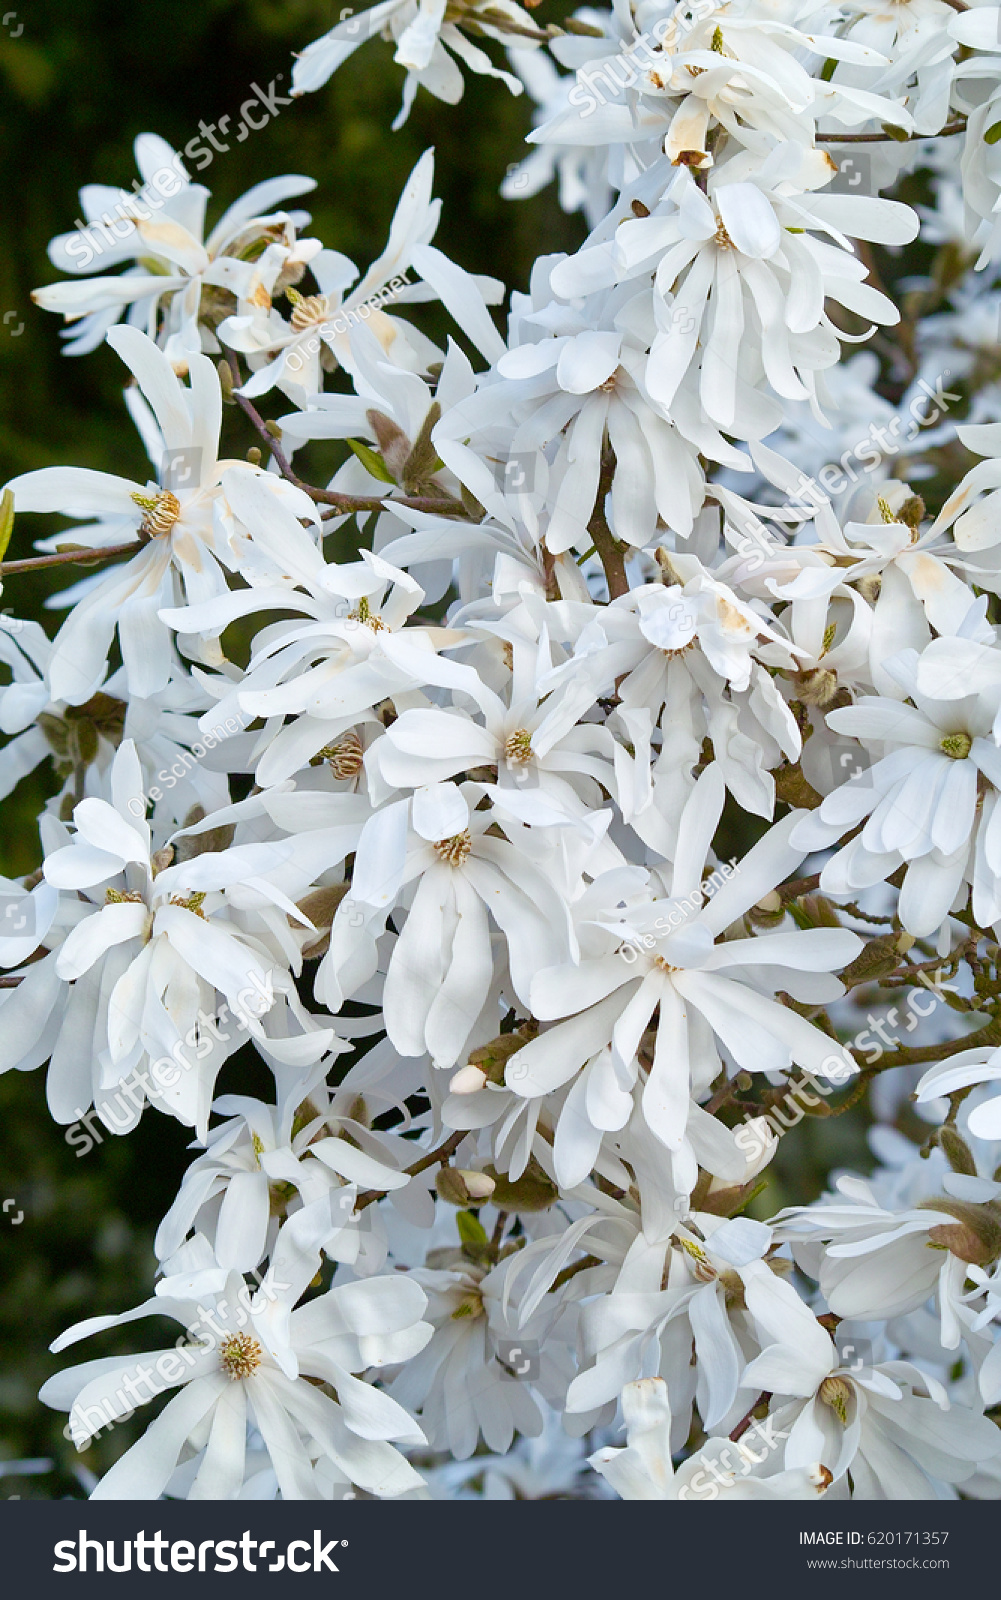 Flowers of a blooming white Star Magnolia stellata shrub in spring ...